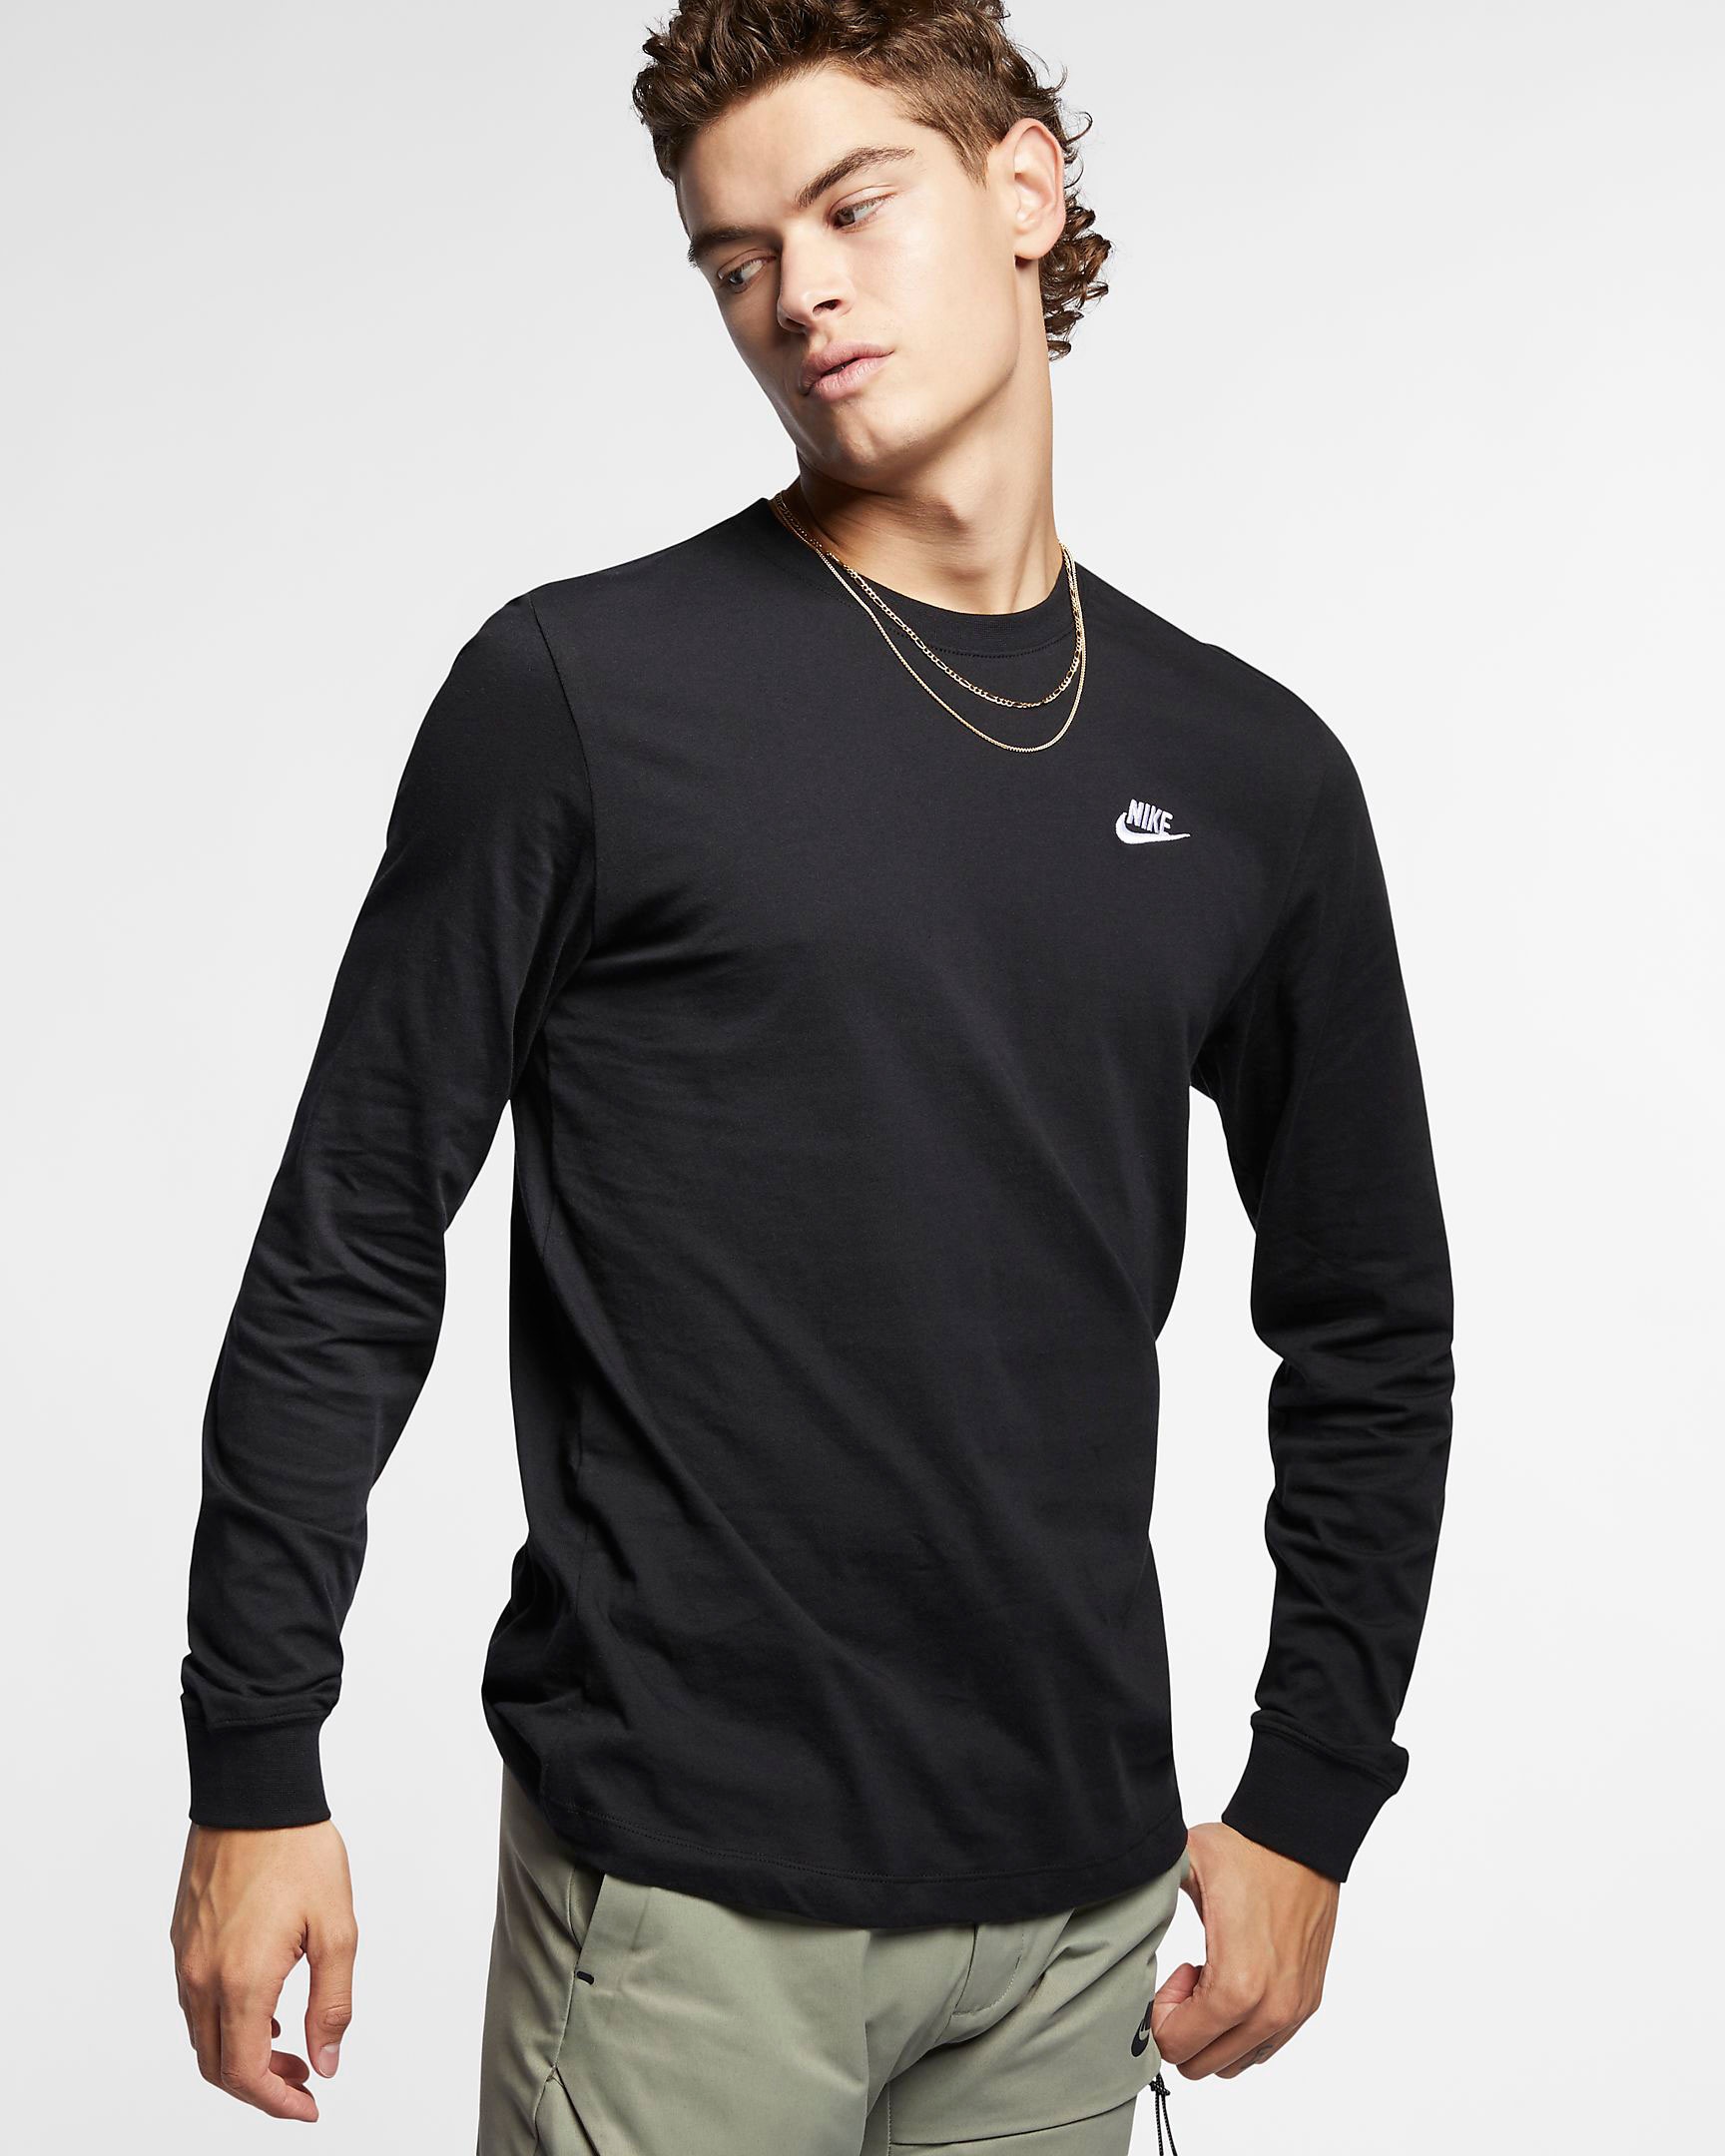 nike-foamposite-one-anthracite-blackout-long-sleeve-shirt-match